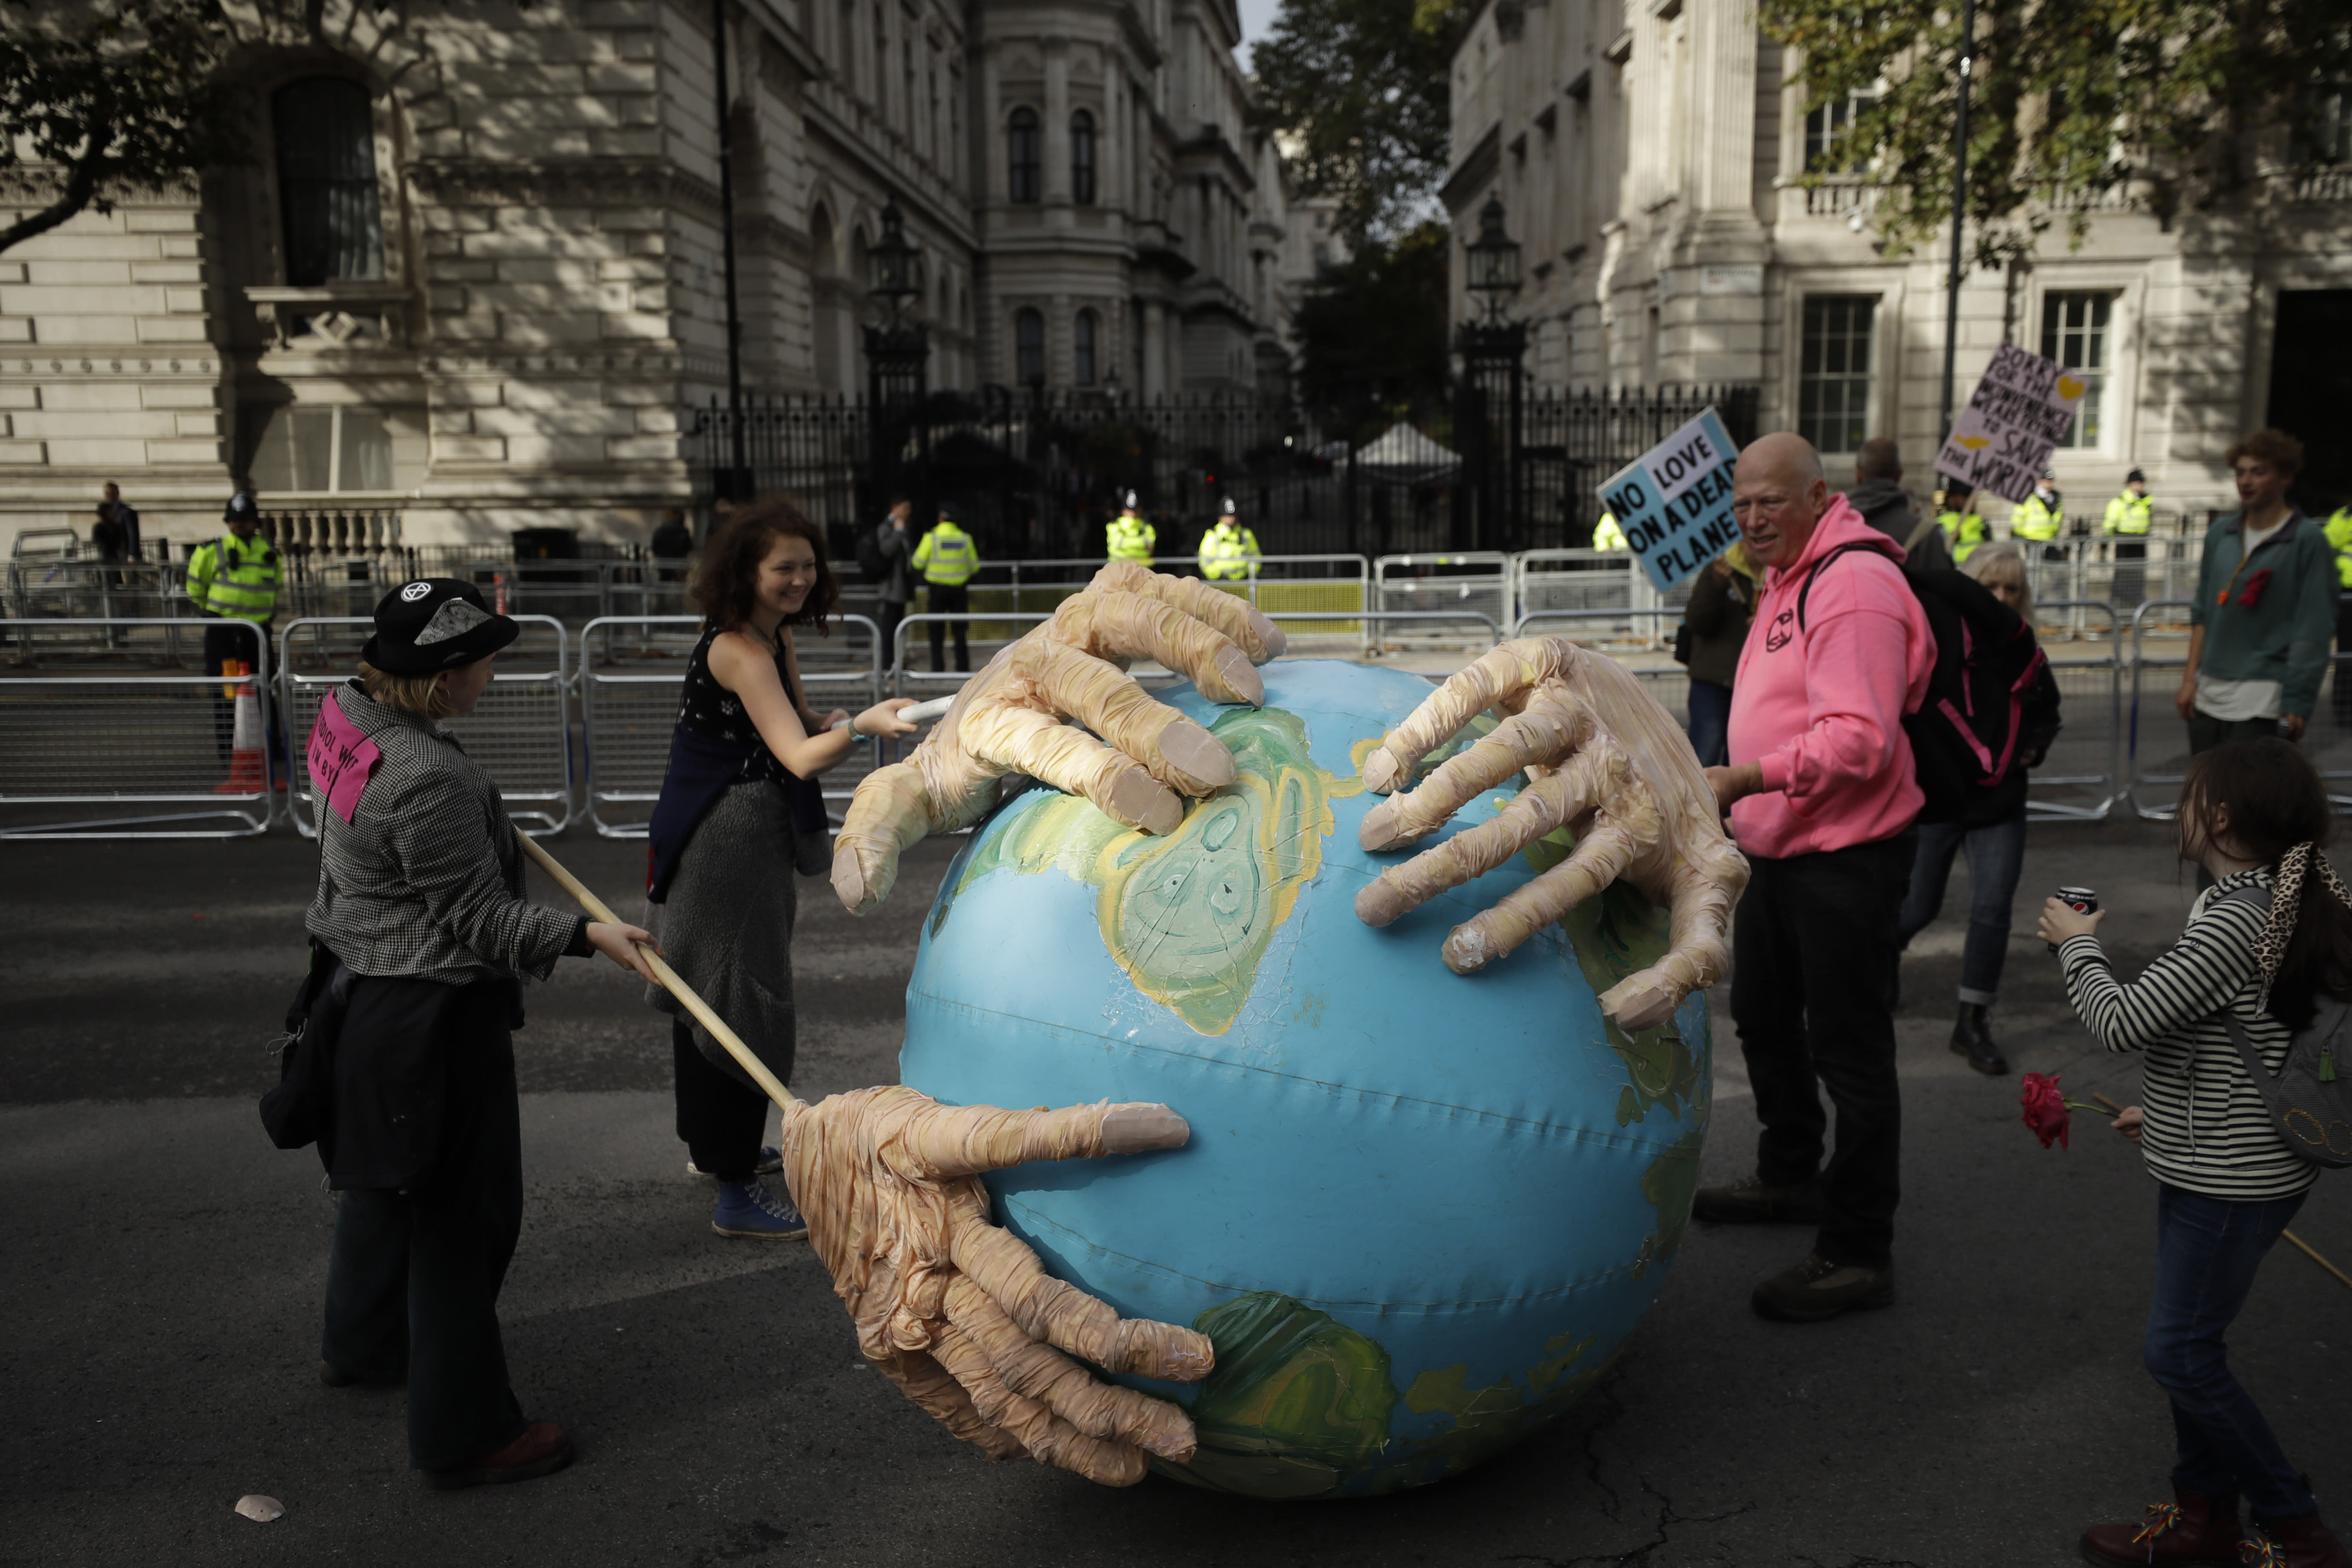 Extinction Rebellion climate change protesters demonstrate backdropped by the front gates of Downing Street in London, Tuesday, Oct. 8, 2019. Hundreds of climate change activists camped out in central London on Tuesday during a second day of world protests by the Extinction Rebellion movement to demand more urgent actions to counter global warming. (AP Photo/Matt Dunham)